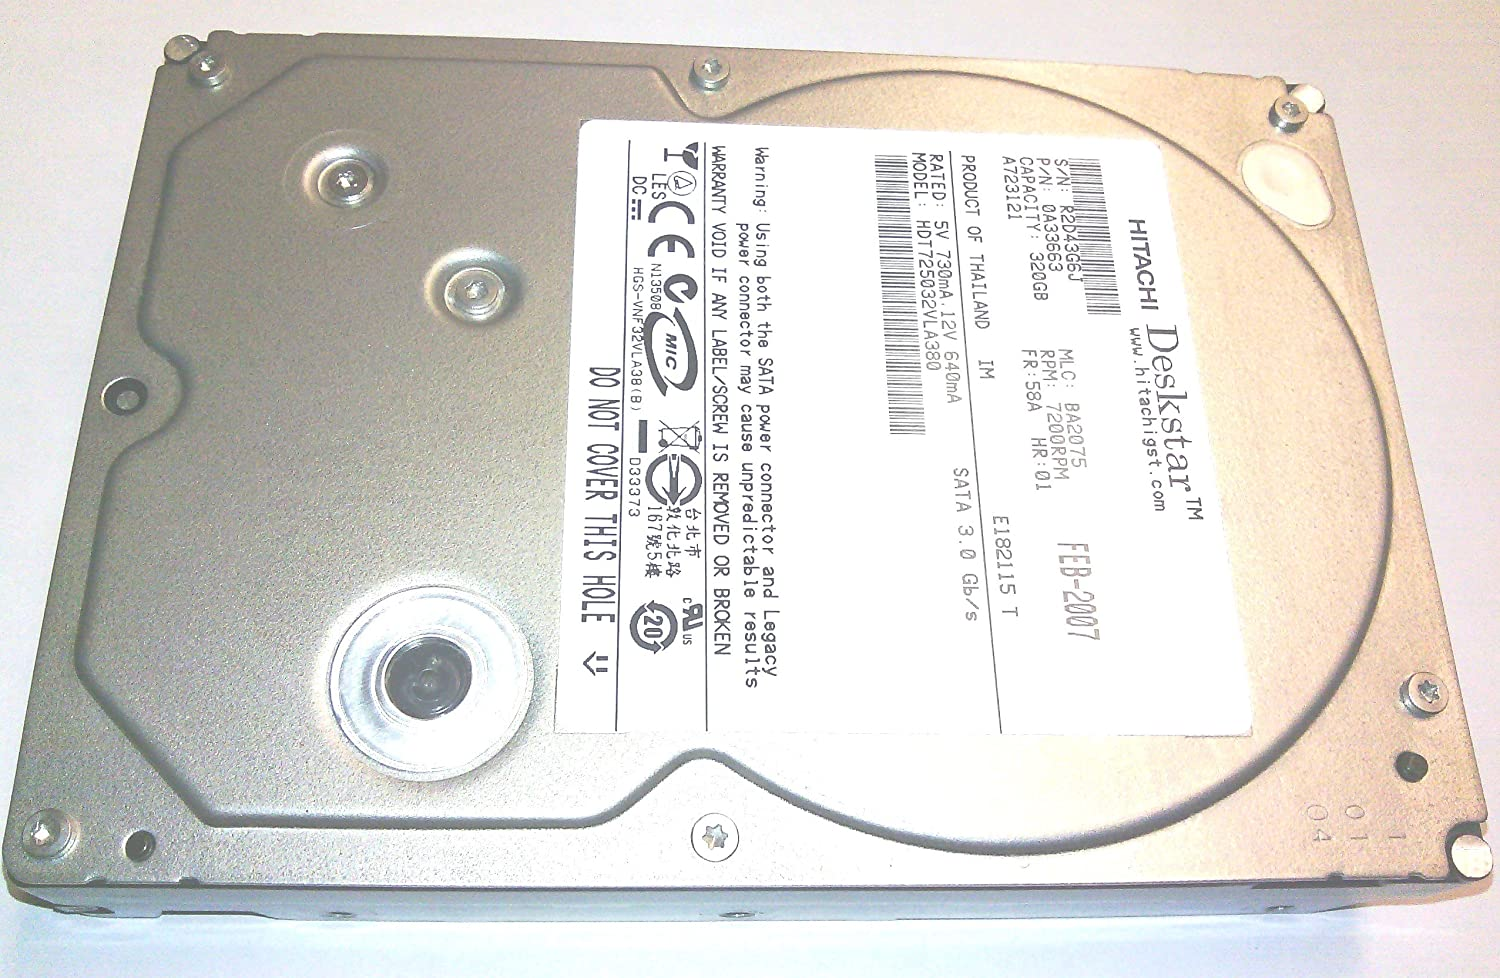 Hitachi HDT721032SLA360 320GB Hard Drive